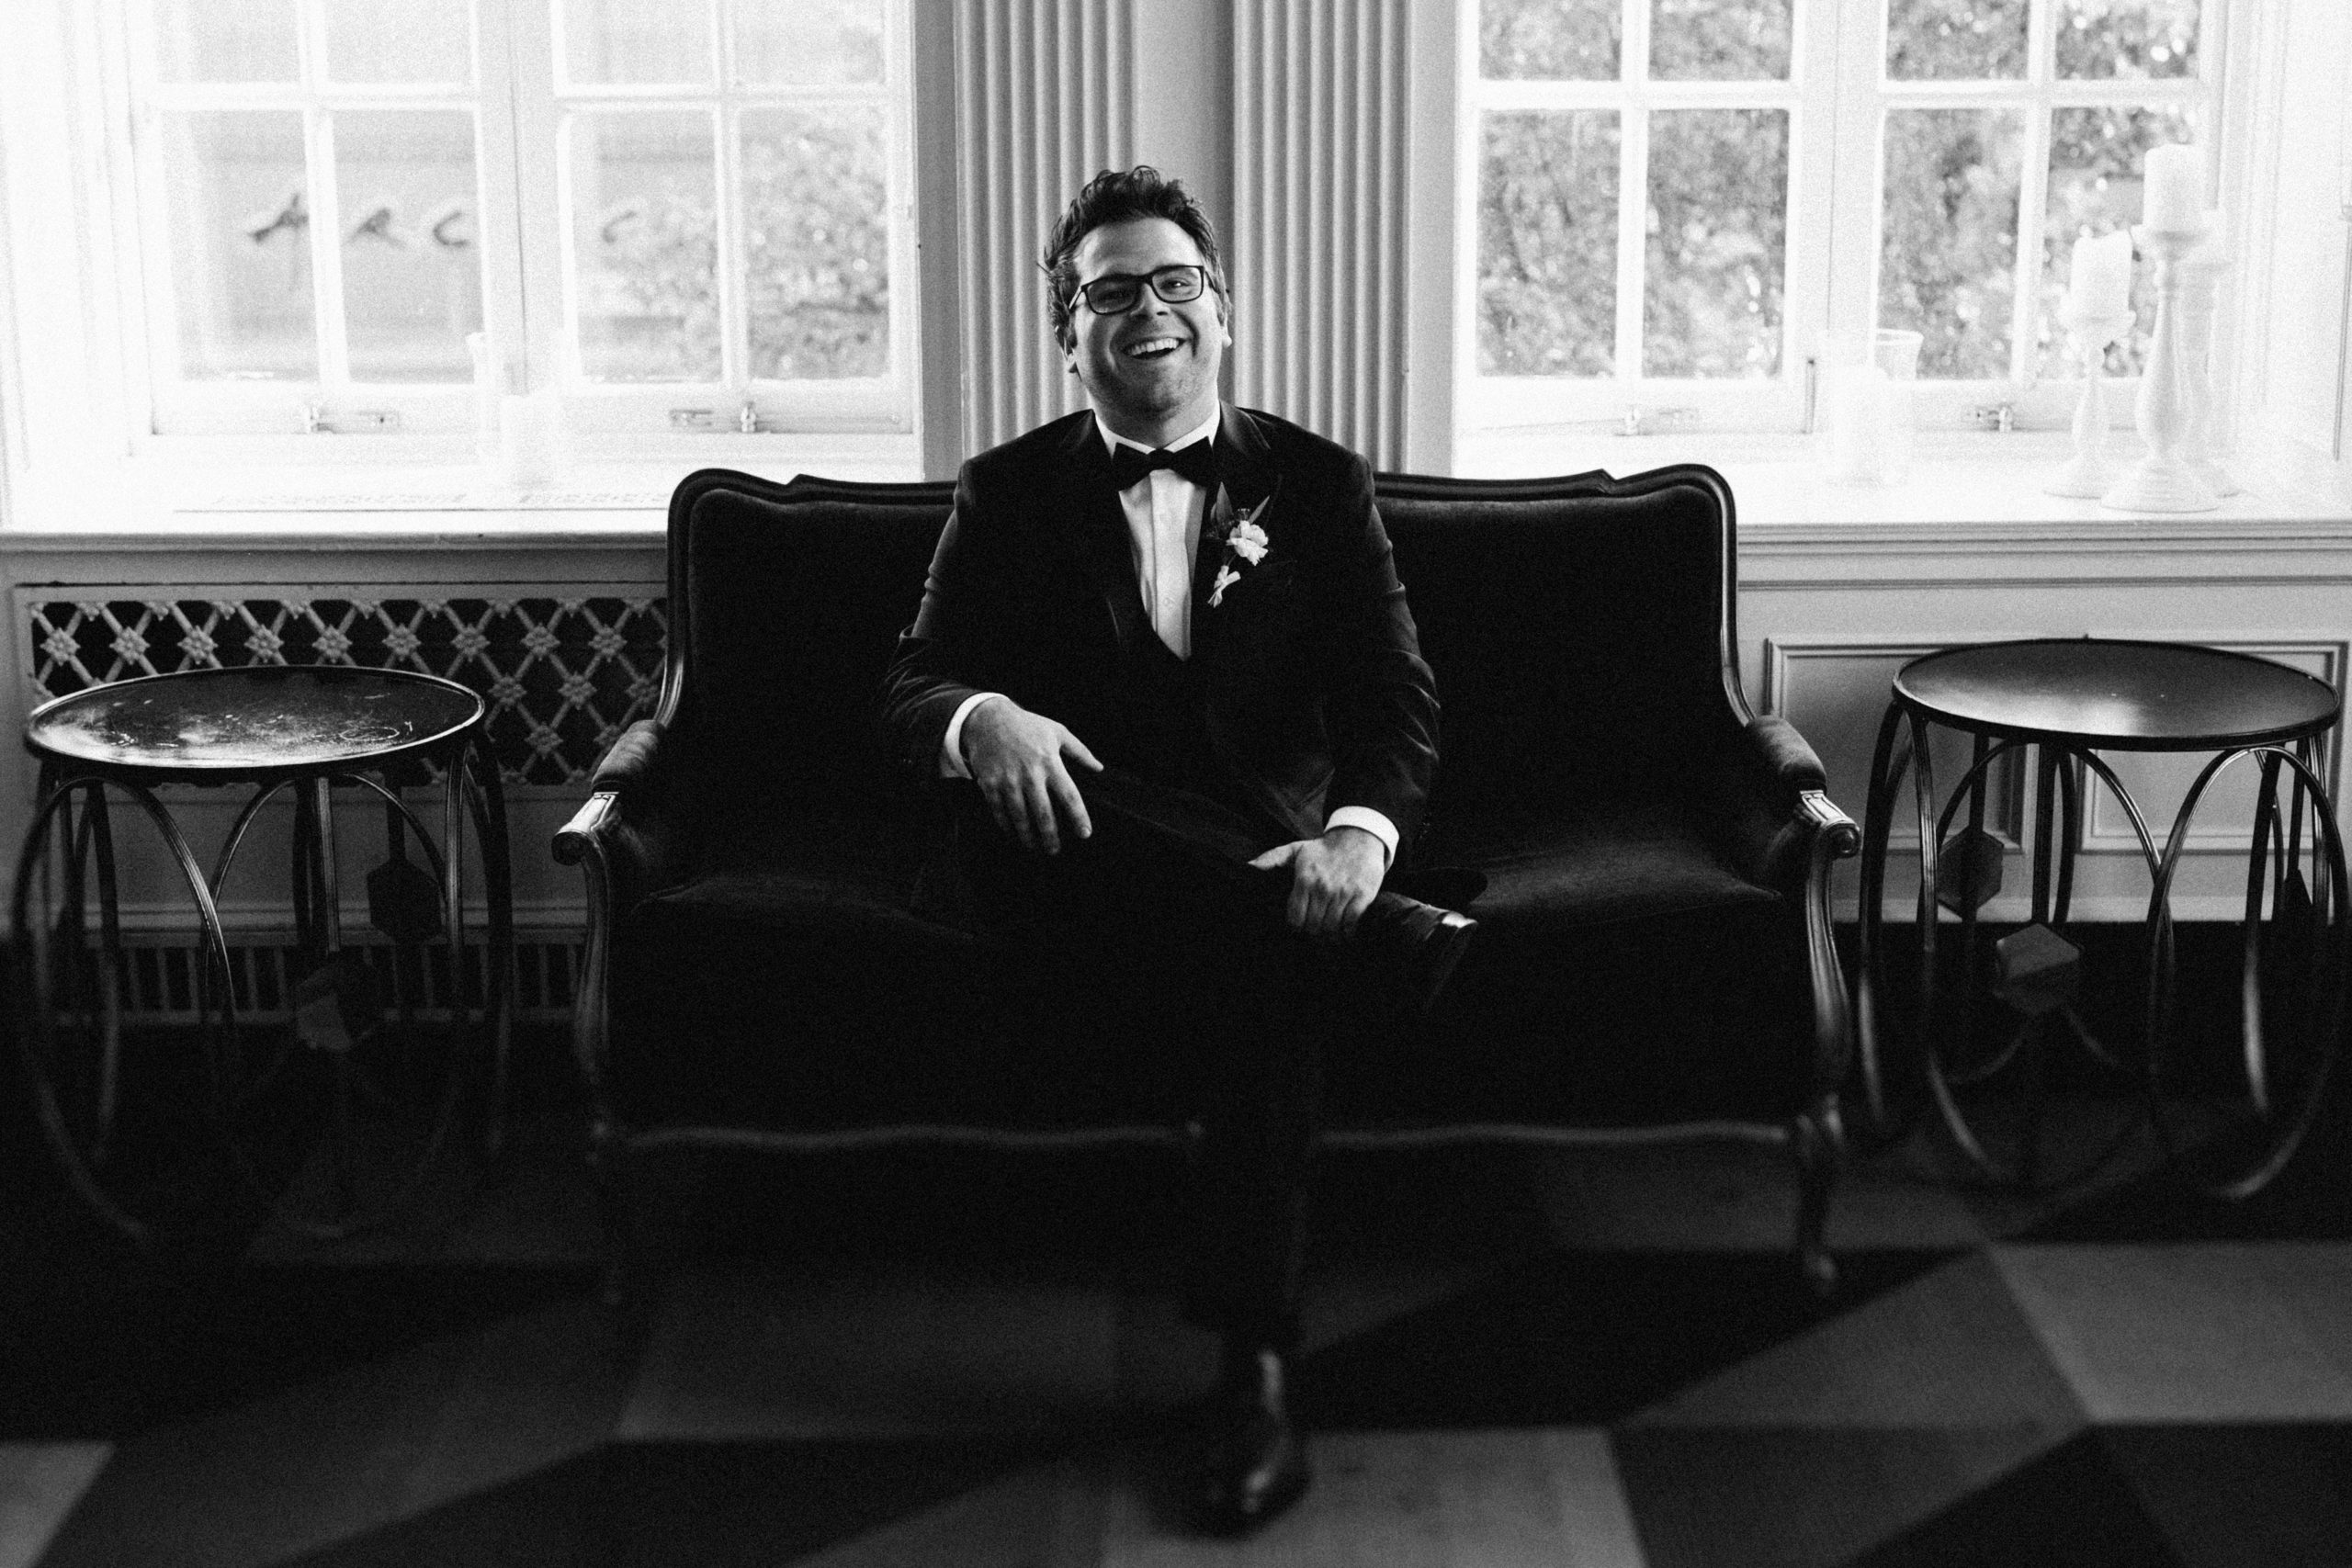 Groom smiling sitting on couch in black and white